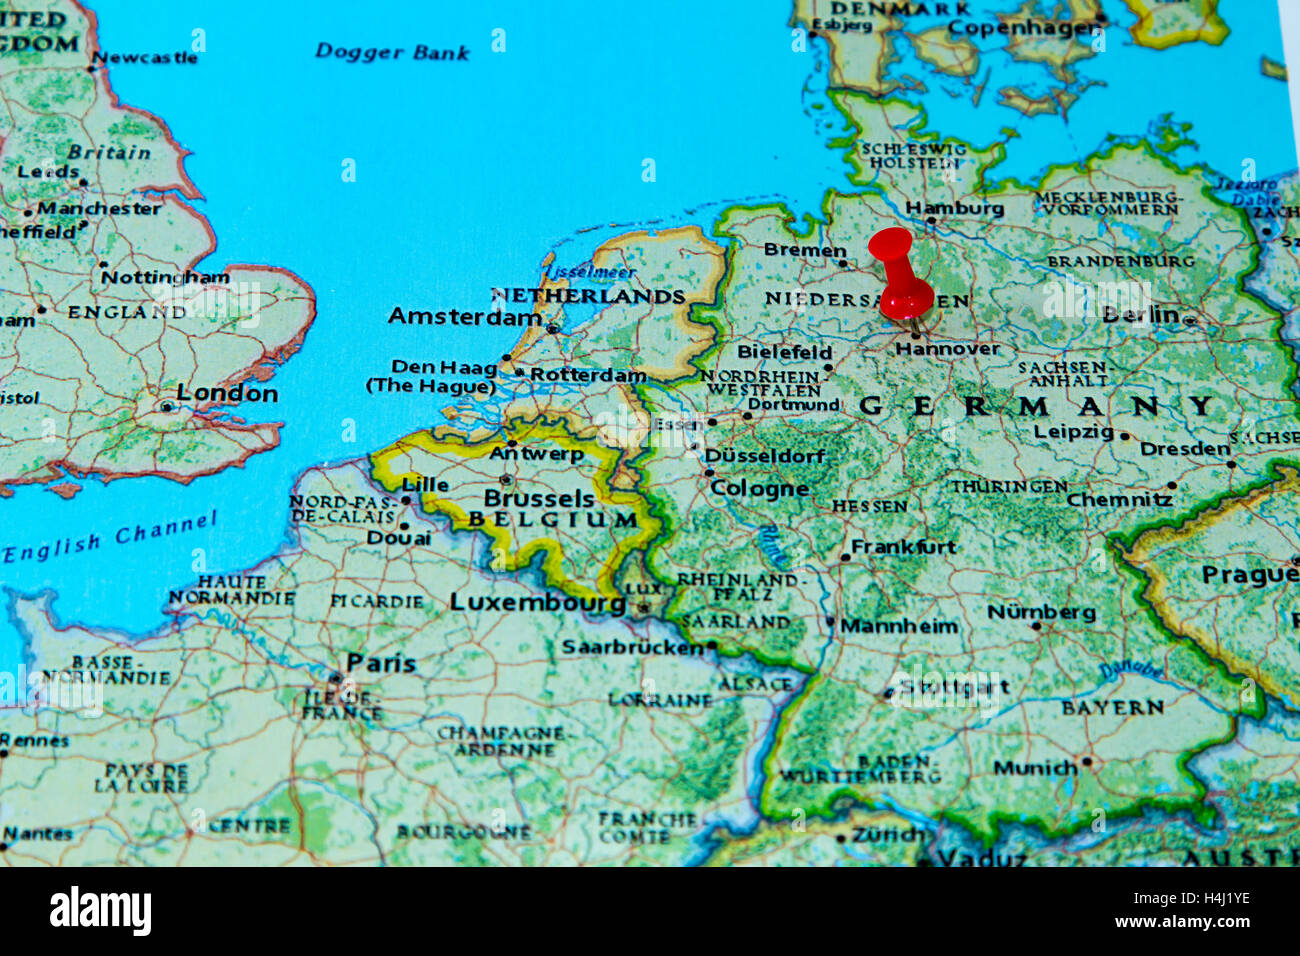 Hannover Germany Map Hannover, Germany pinned on a map of Europe Stock Photo: 123327890